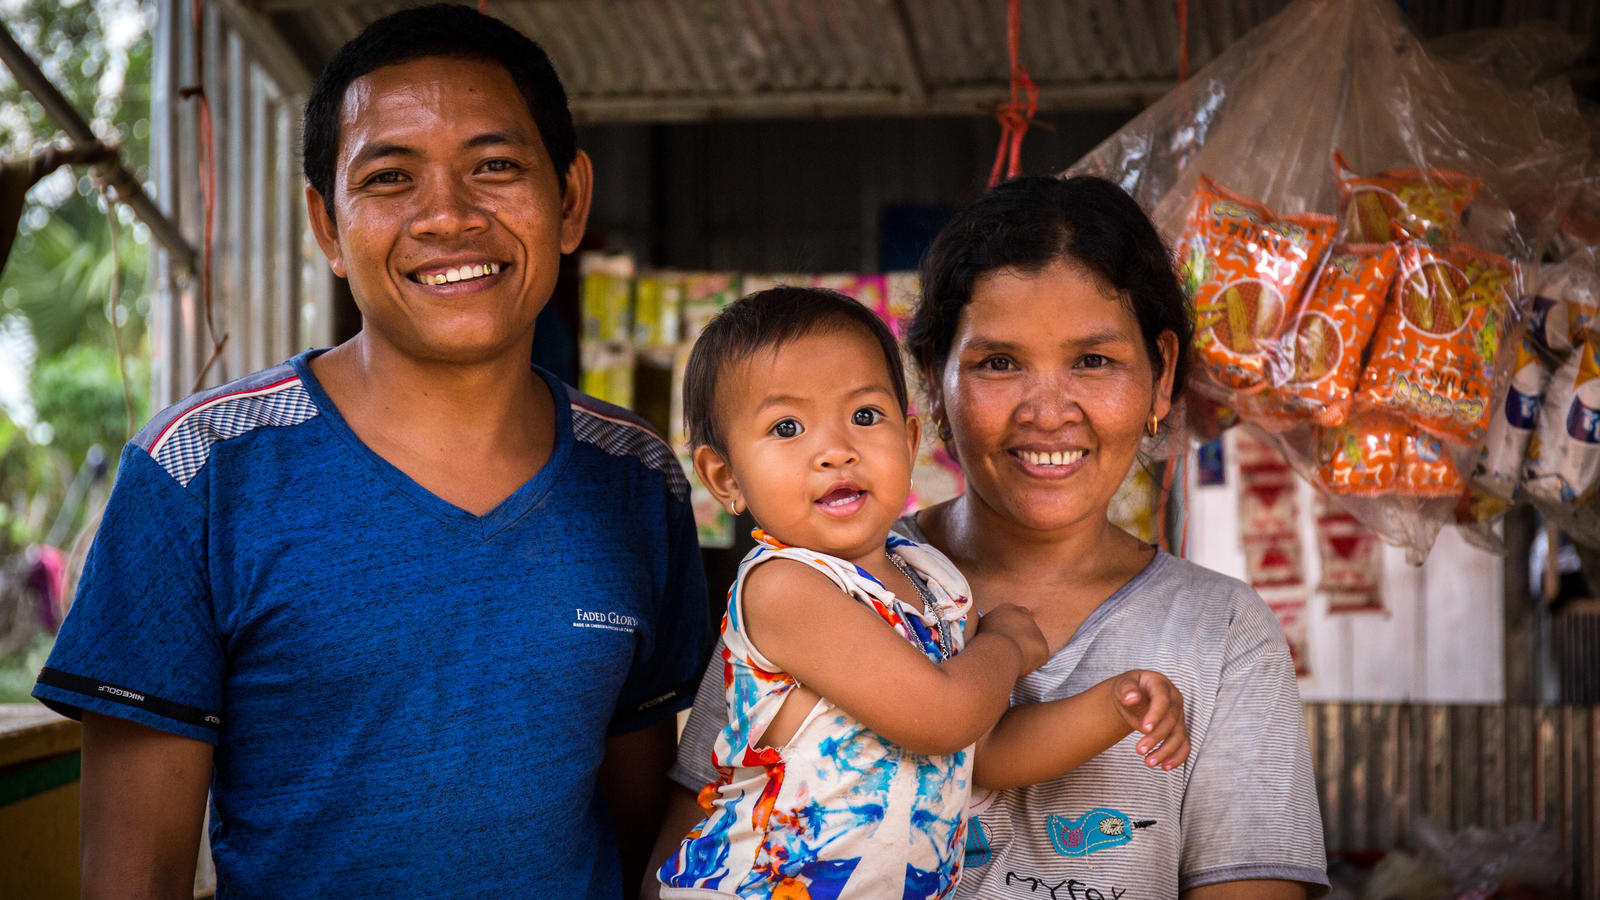 Mor Tei, 32, with wife Roeung Mom, 33, and daughter, Khaun Sreymuch, 2, Beng Village, Pursat, Cambodia, Feb 2018